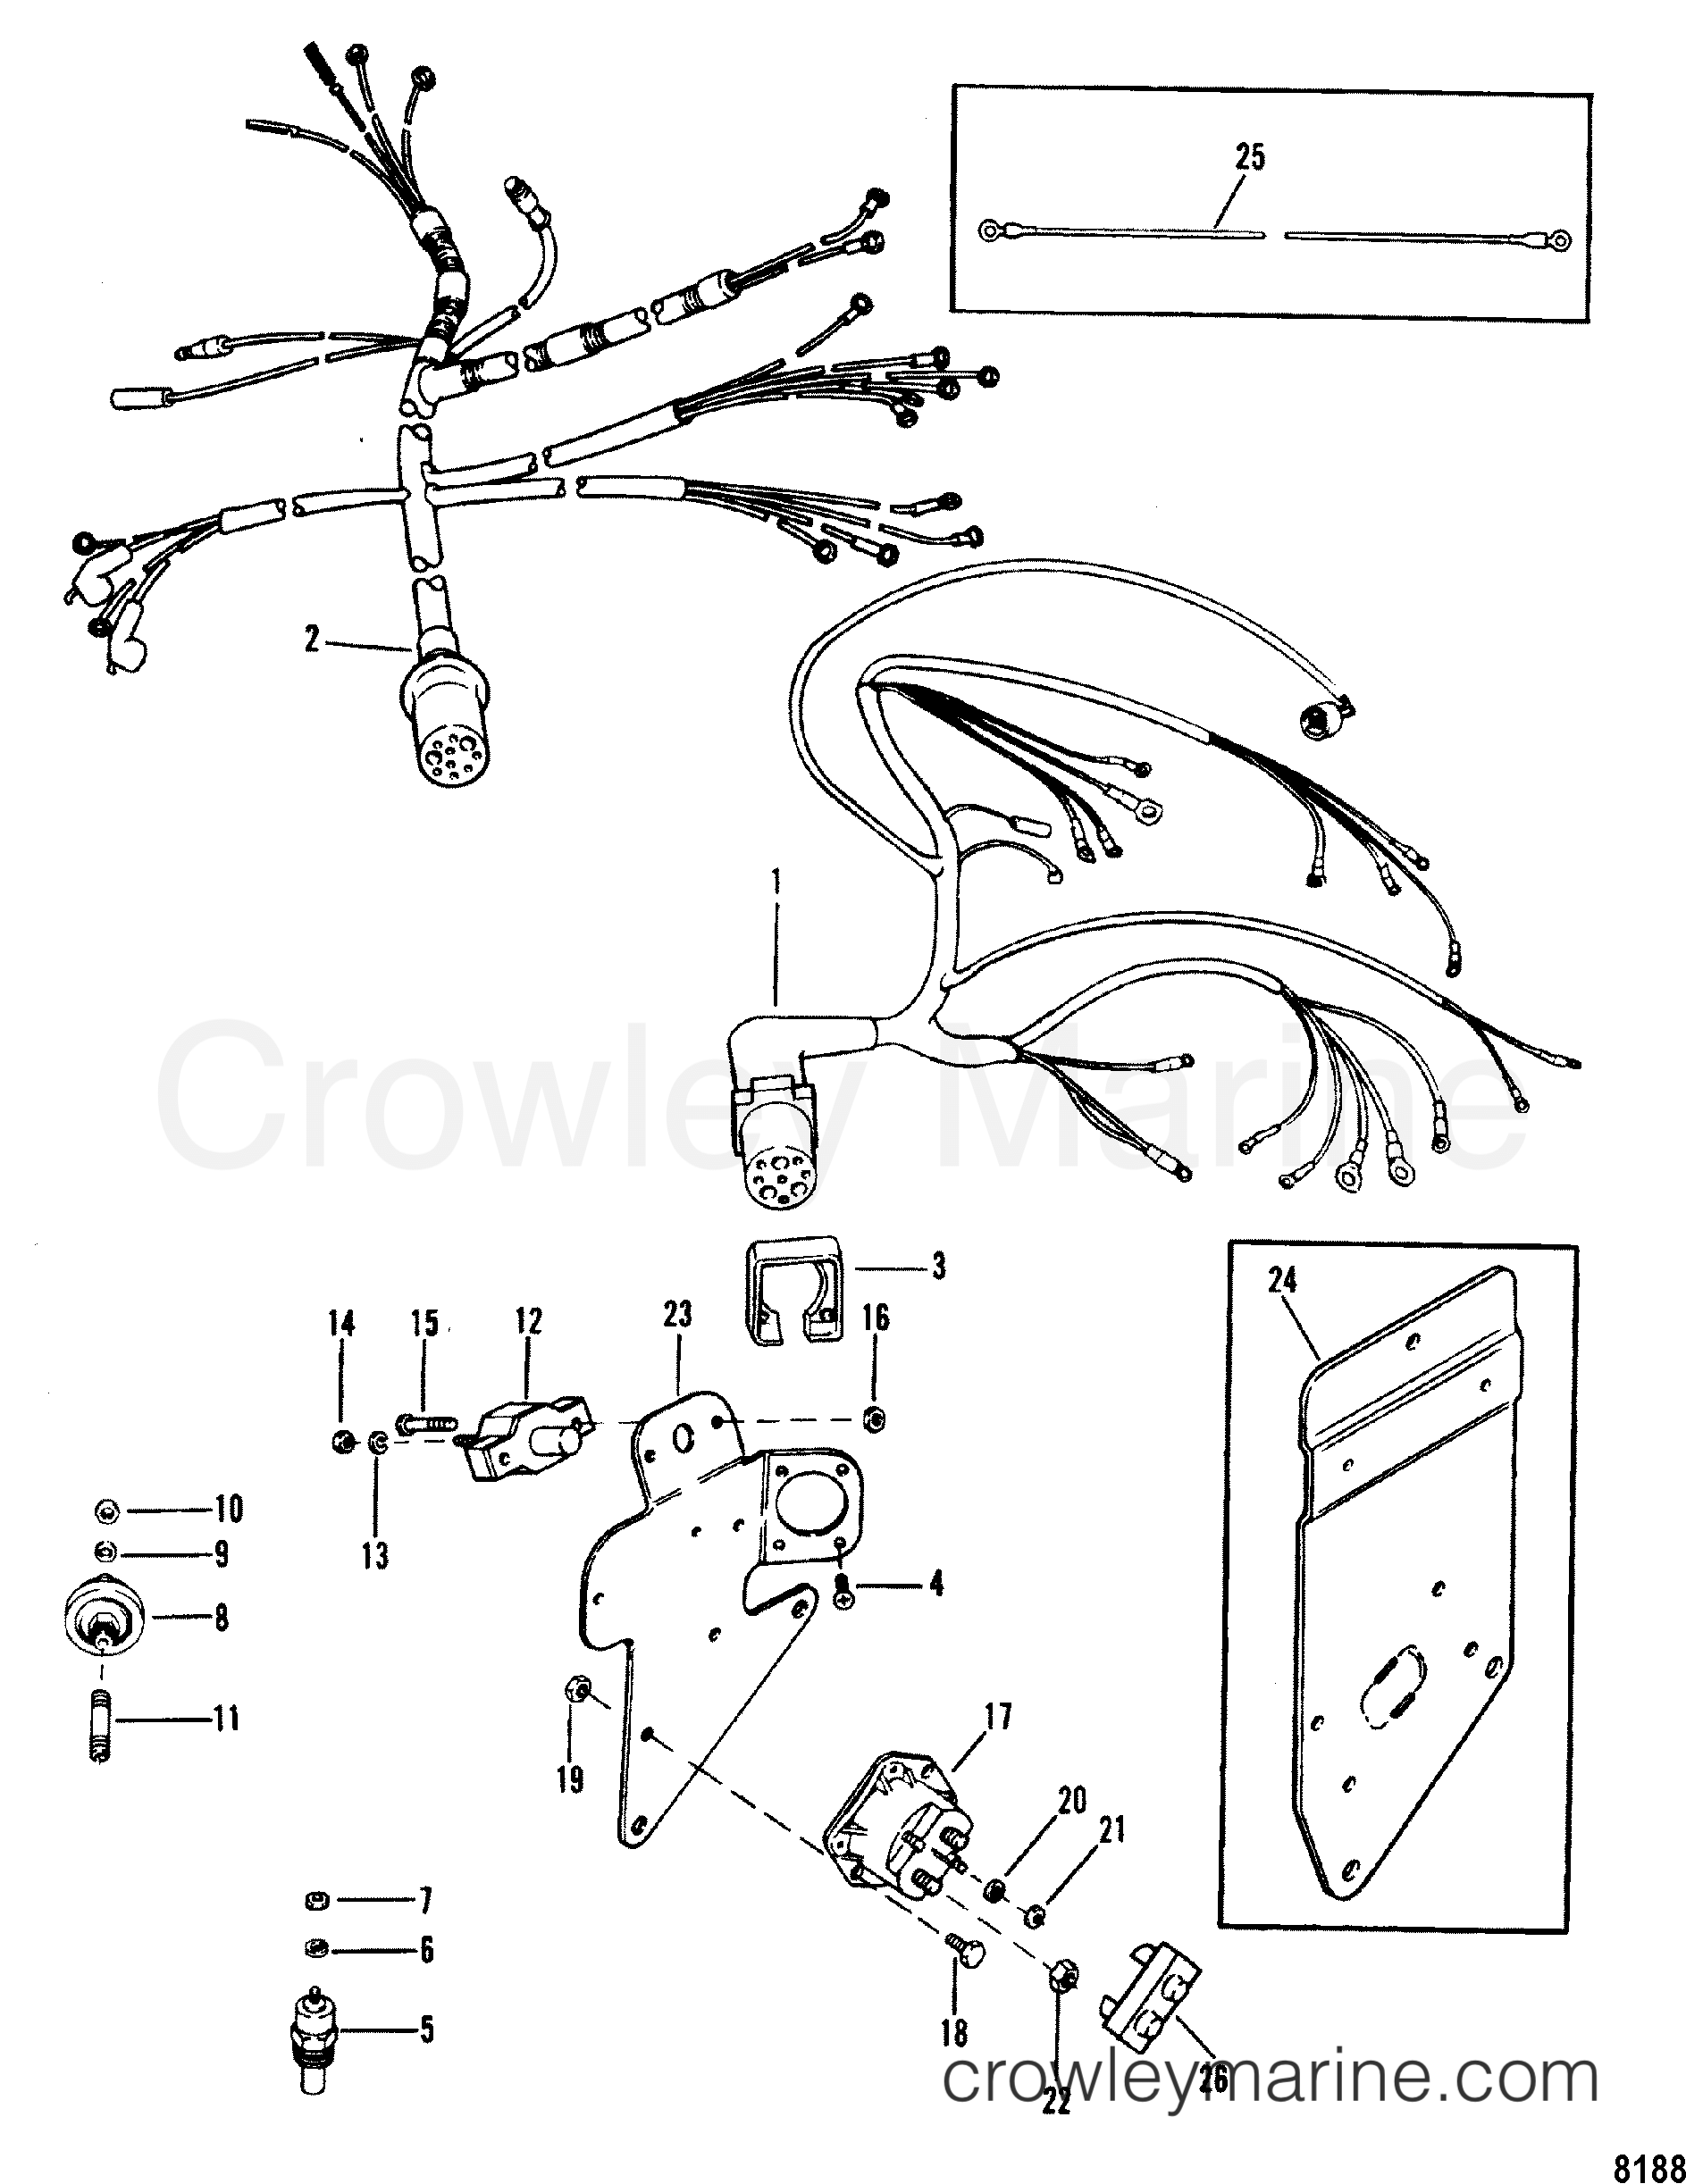 wiring harness and electrical components 1990 mercruiser 3 0l alpha i 430b00001 crowley marine